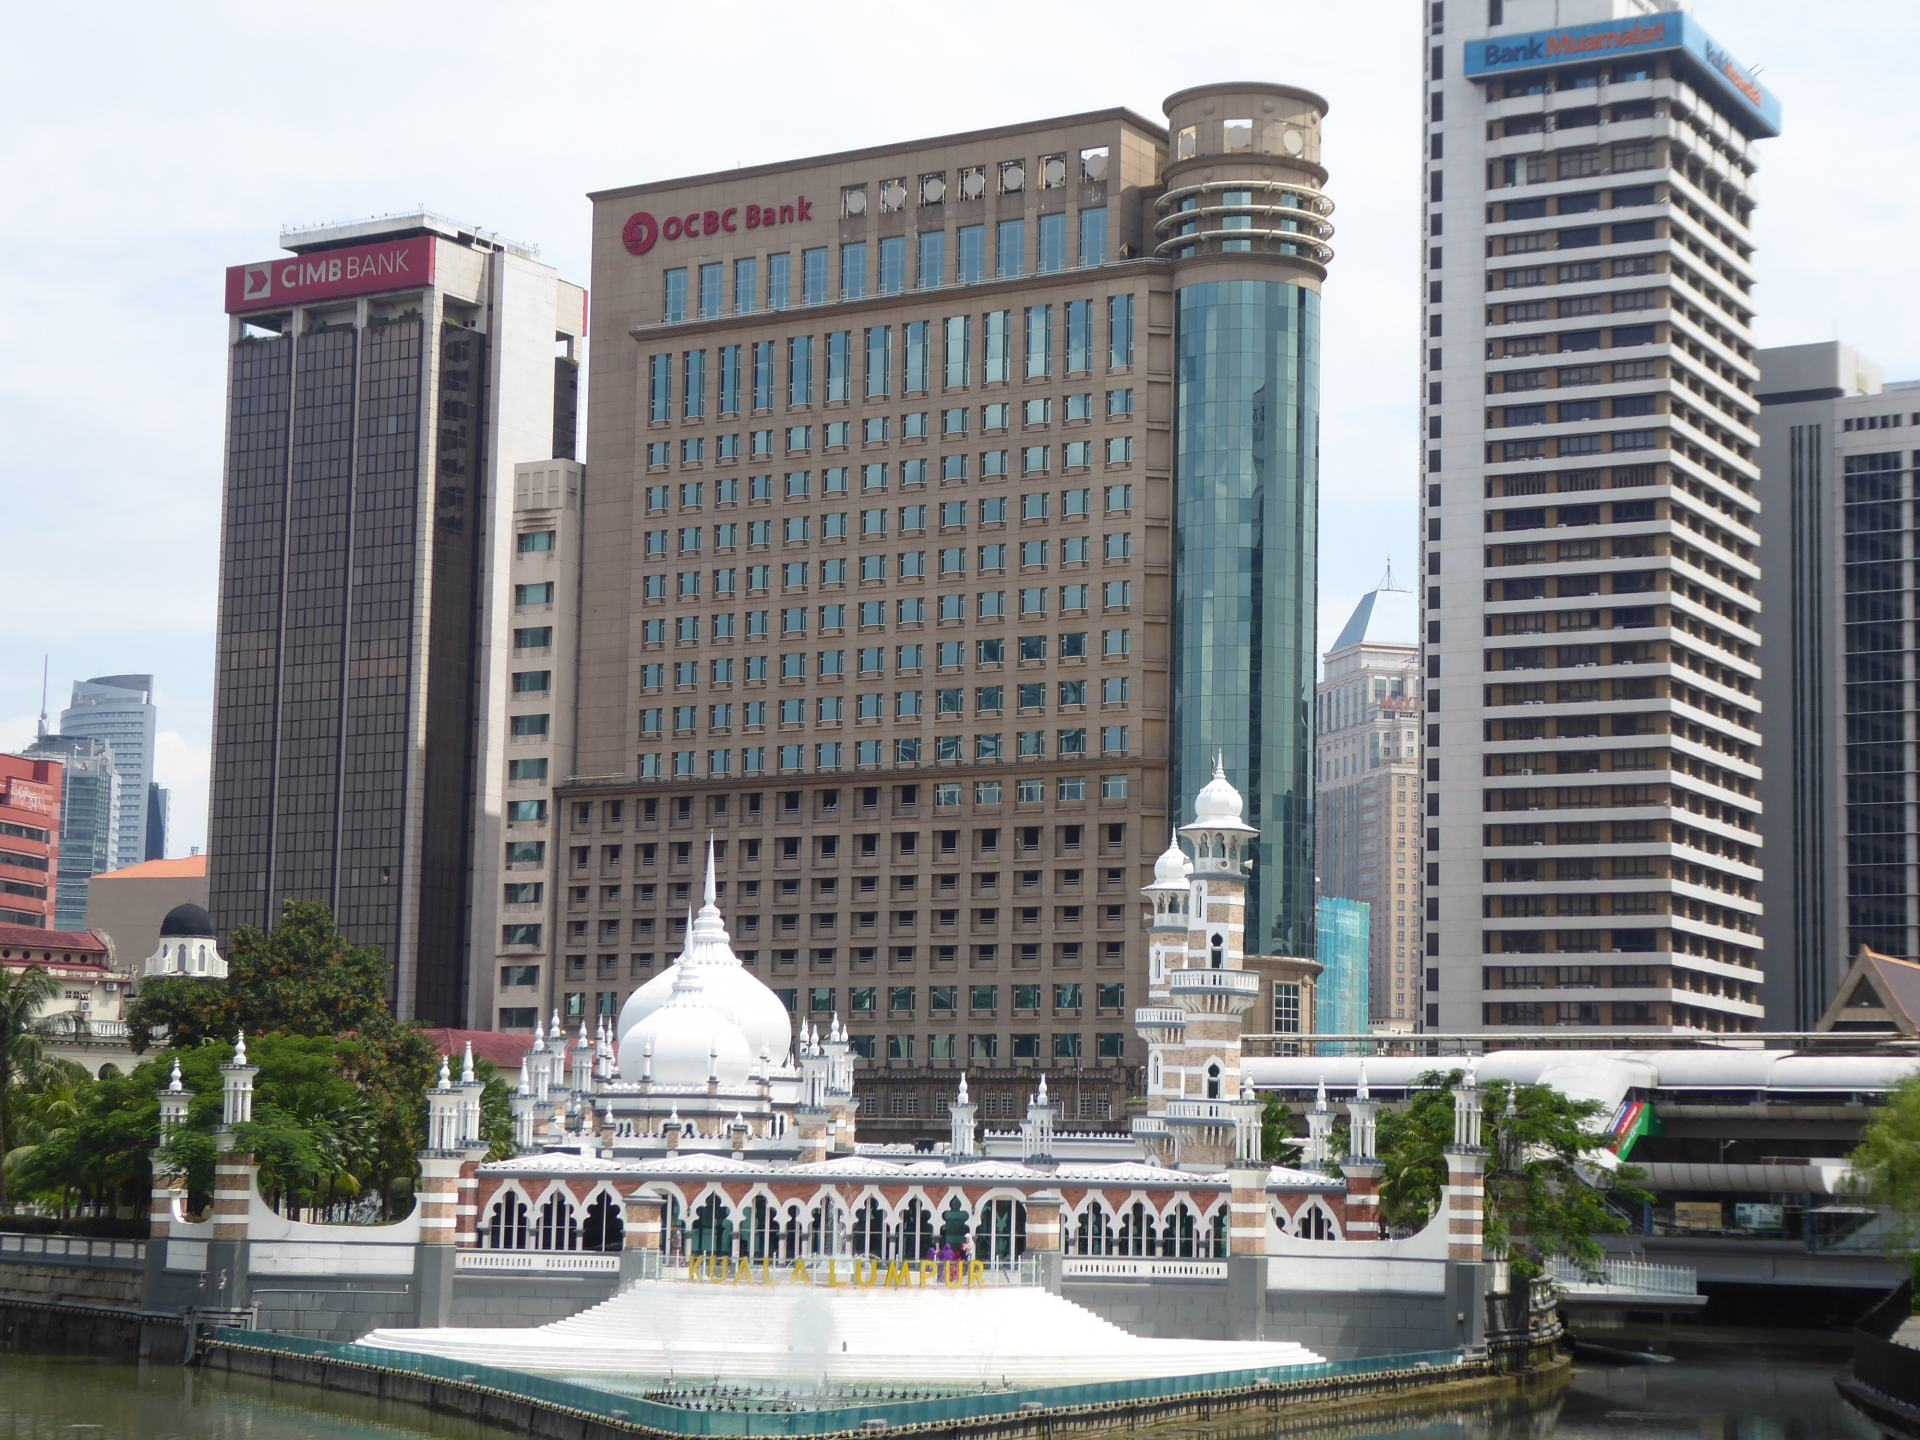 A view of Masjid Jamek Mosque with skyscrapers behind it. In Kuala Lumpur, one of the biggest cities in Southeast Asia.